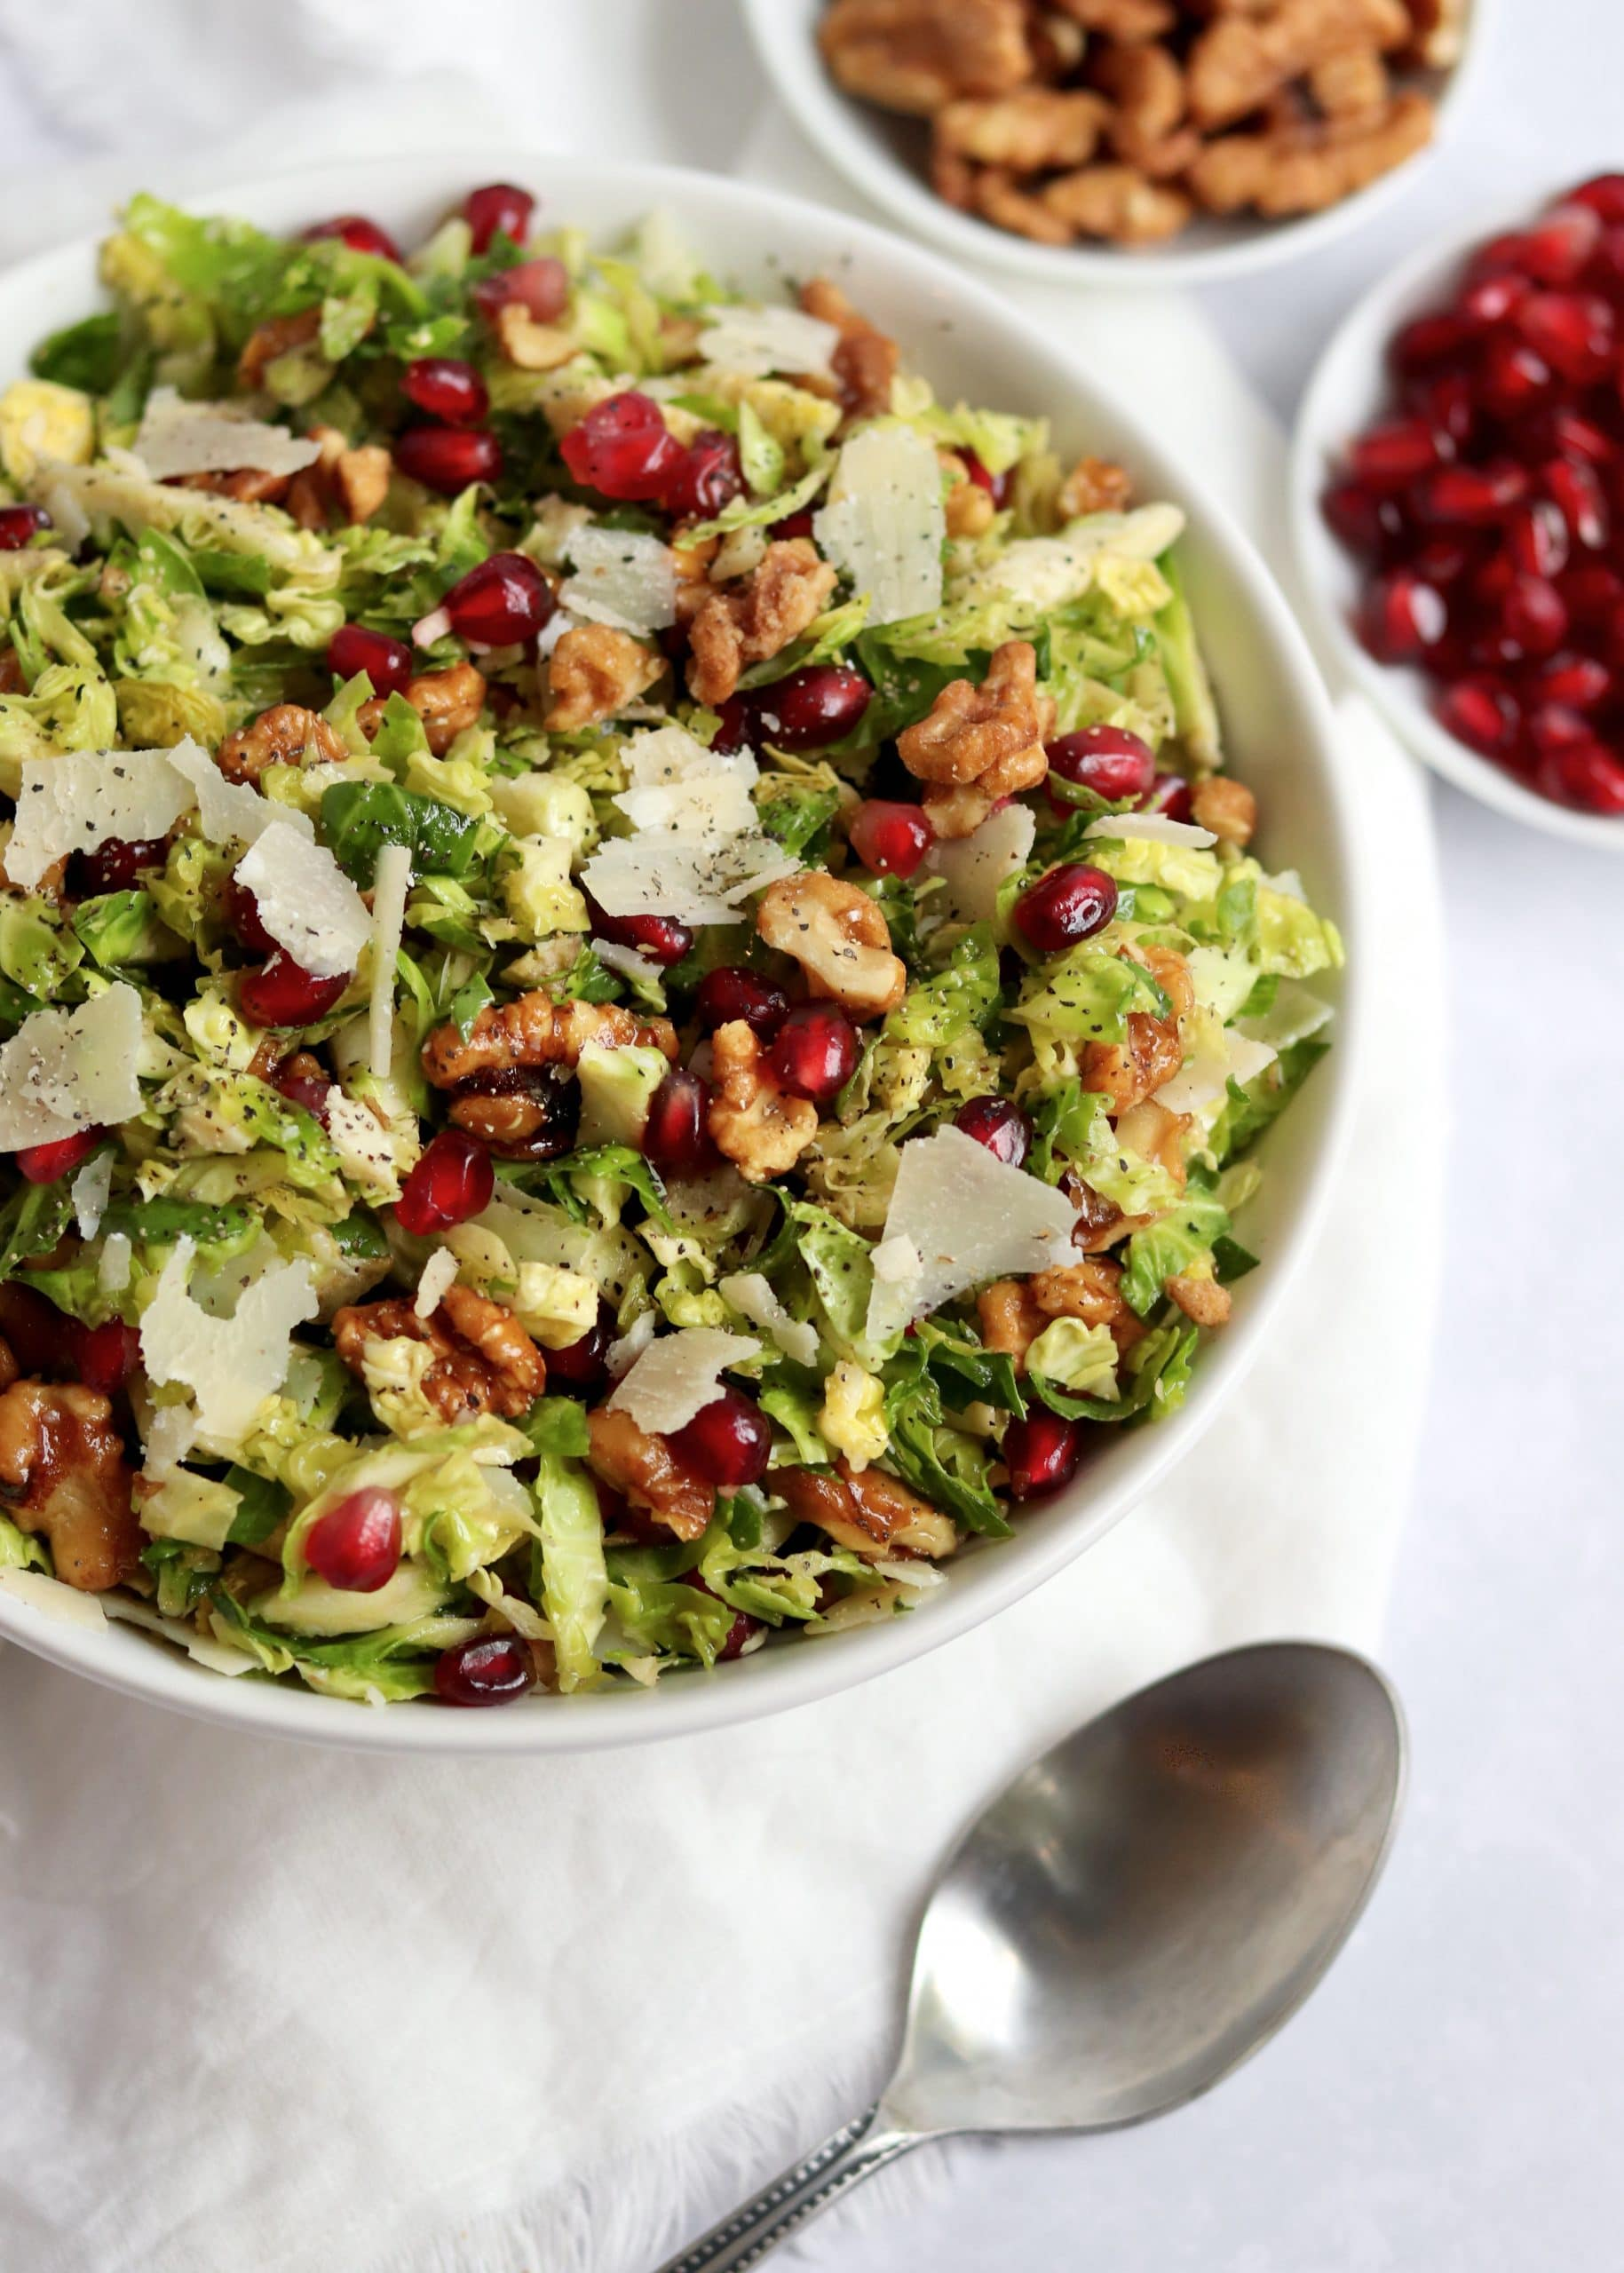 Pomegranate Brussels sprout Salad with walnuts